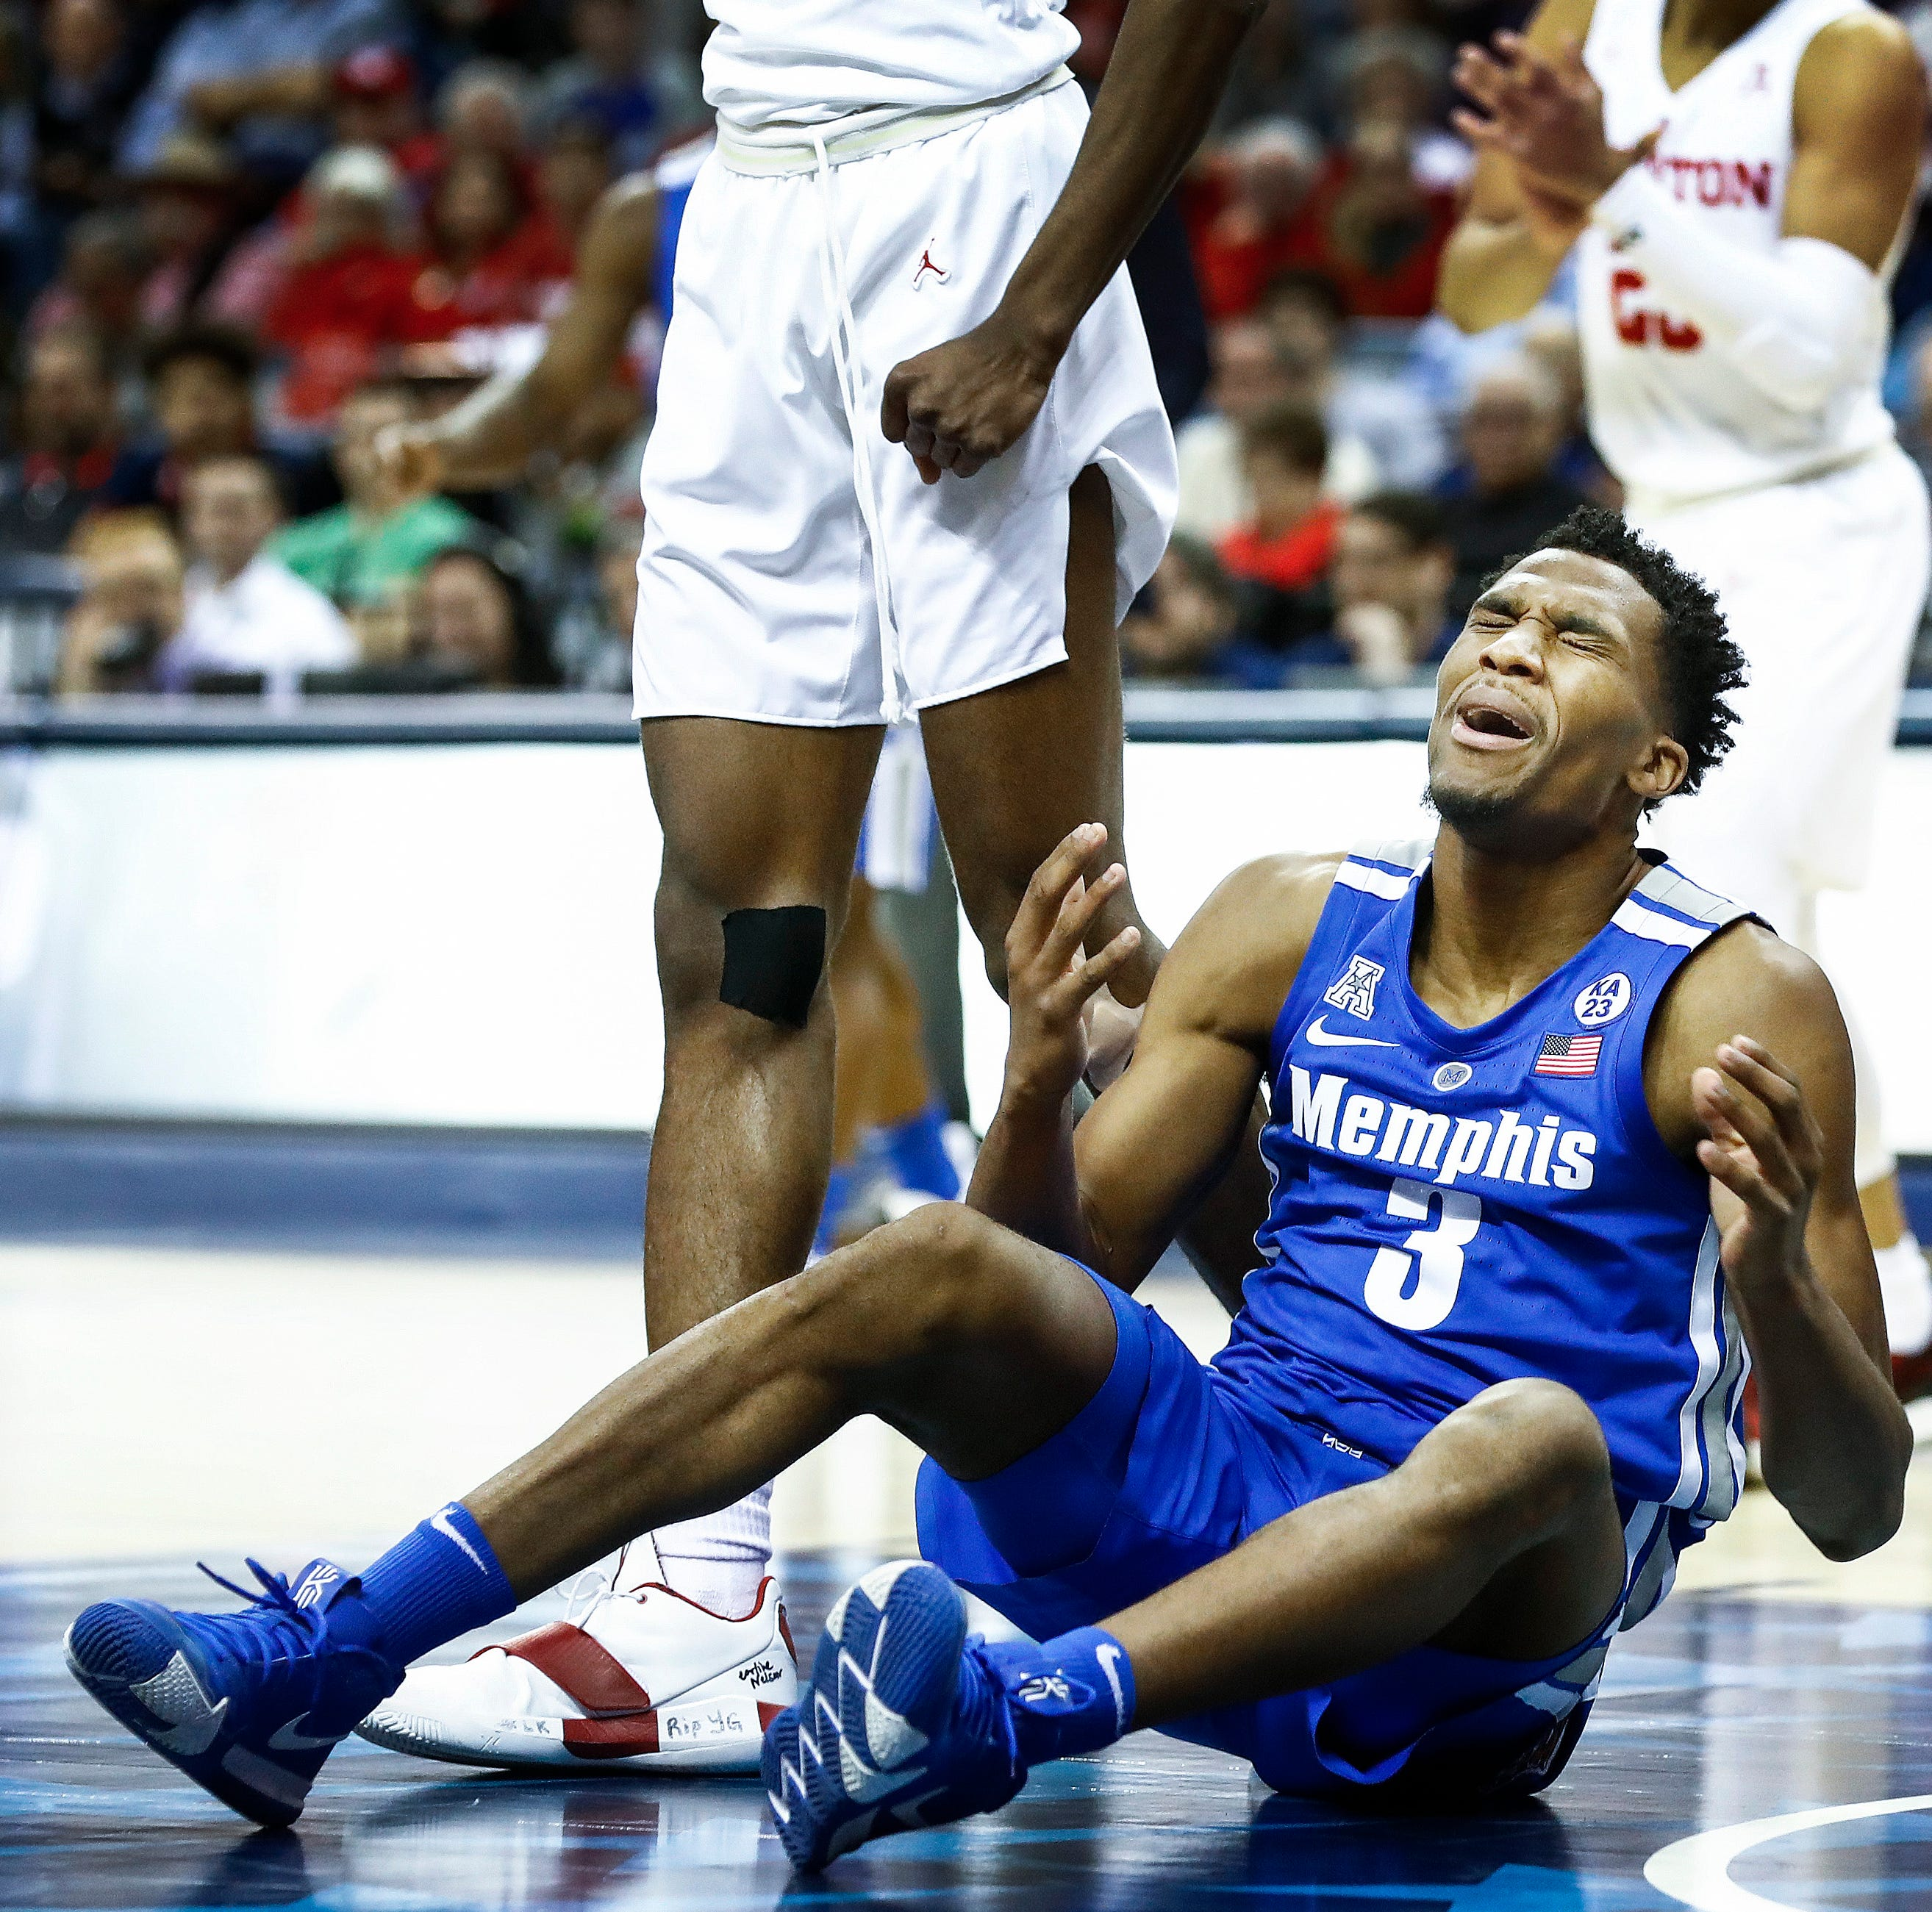 Houston beats Memphis to quash Tigers' NCAA Tournament dreams. There's no shame in that.